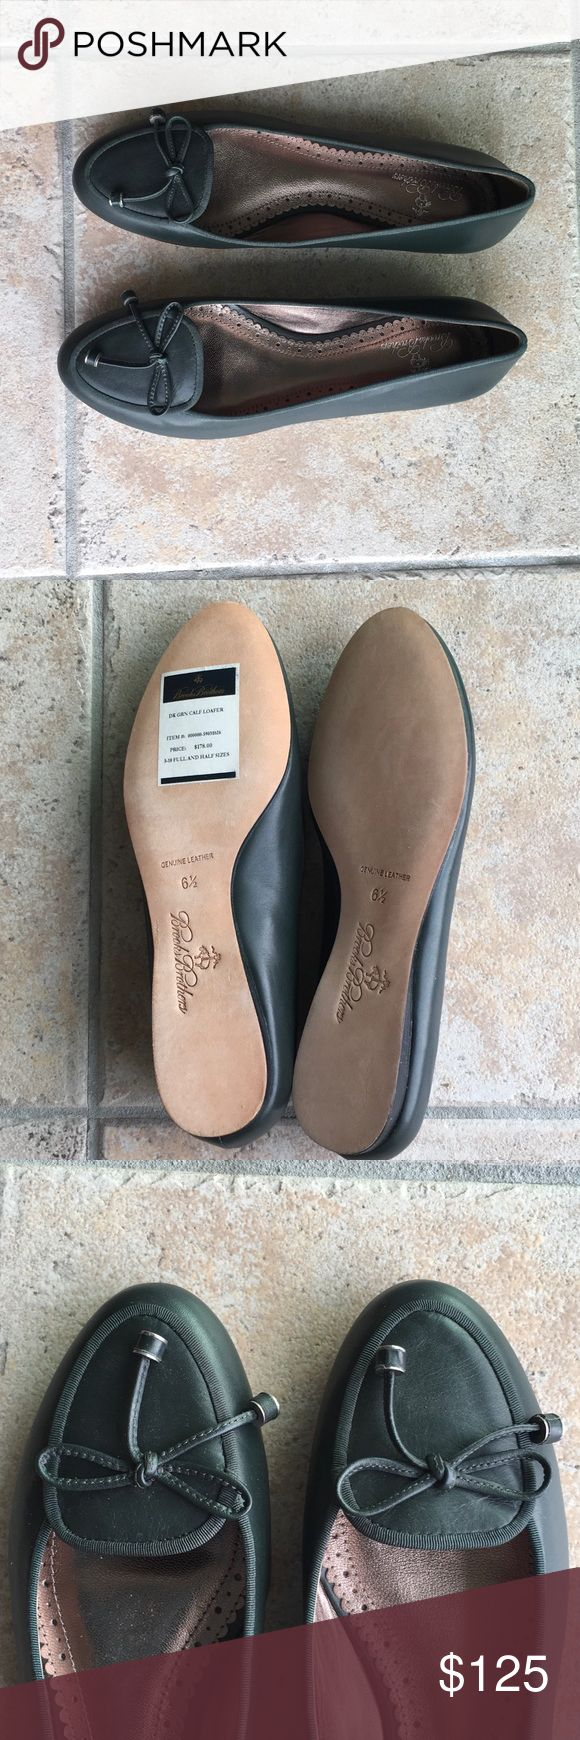 Brooks Brothers Calf leather loafers NWT, never worn Brooks Brothers flats, timeless & classic, in louden green Brooks Brothers Shoes Flats & Loafers